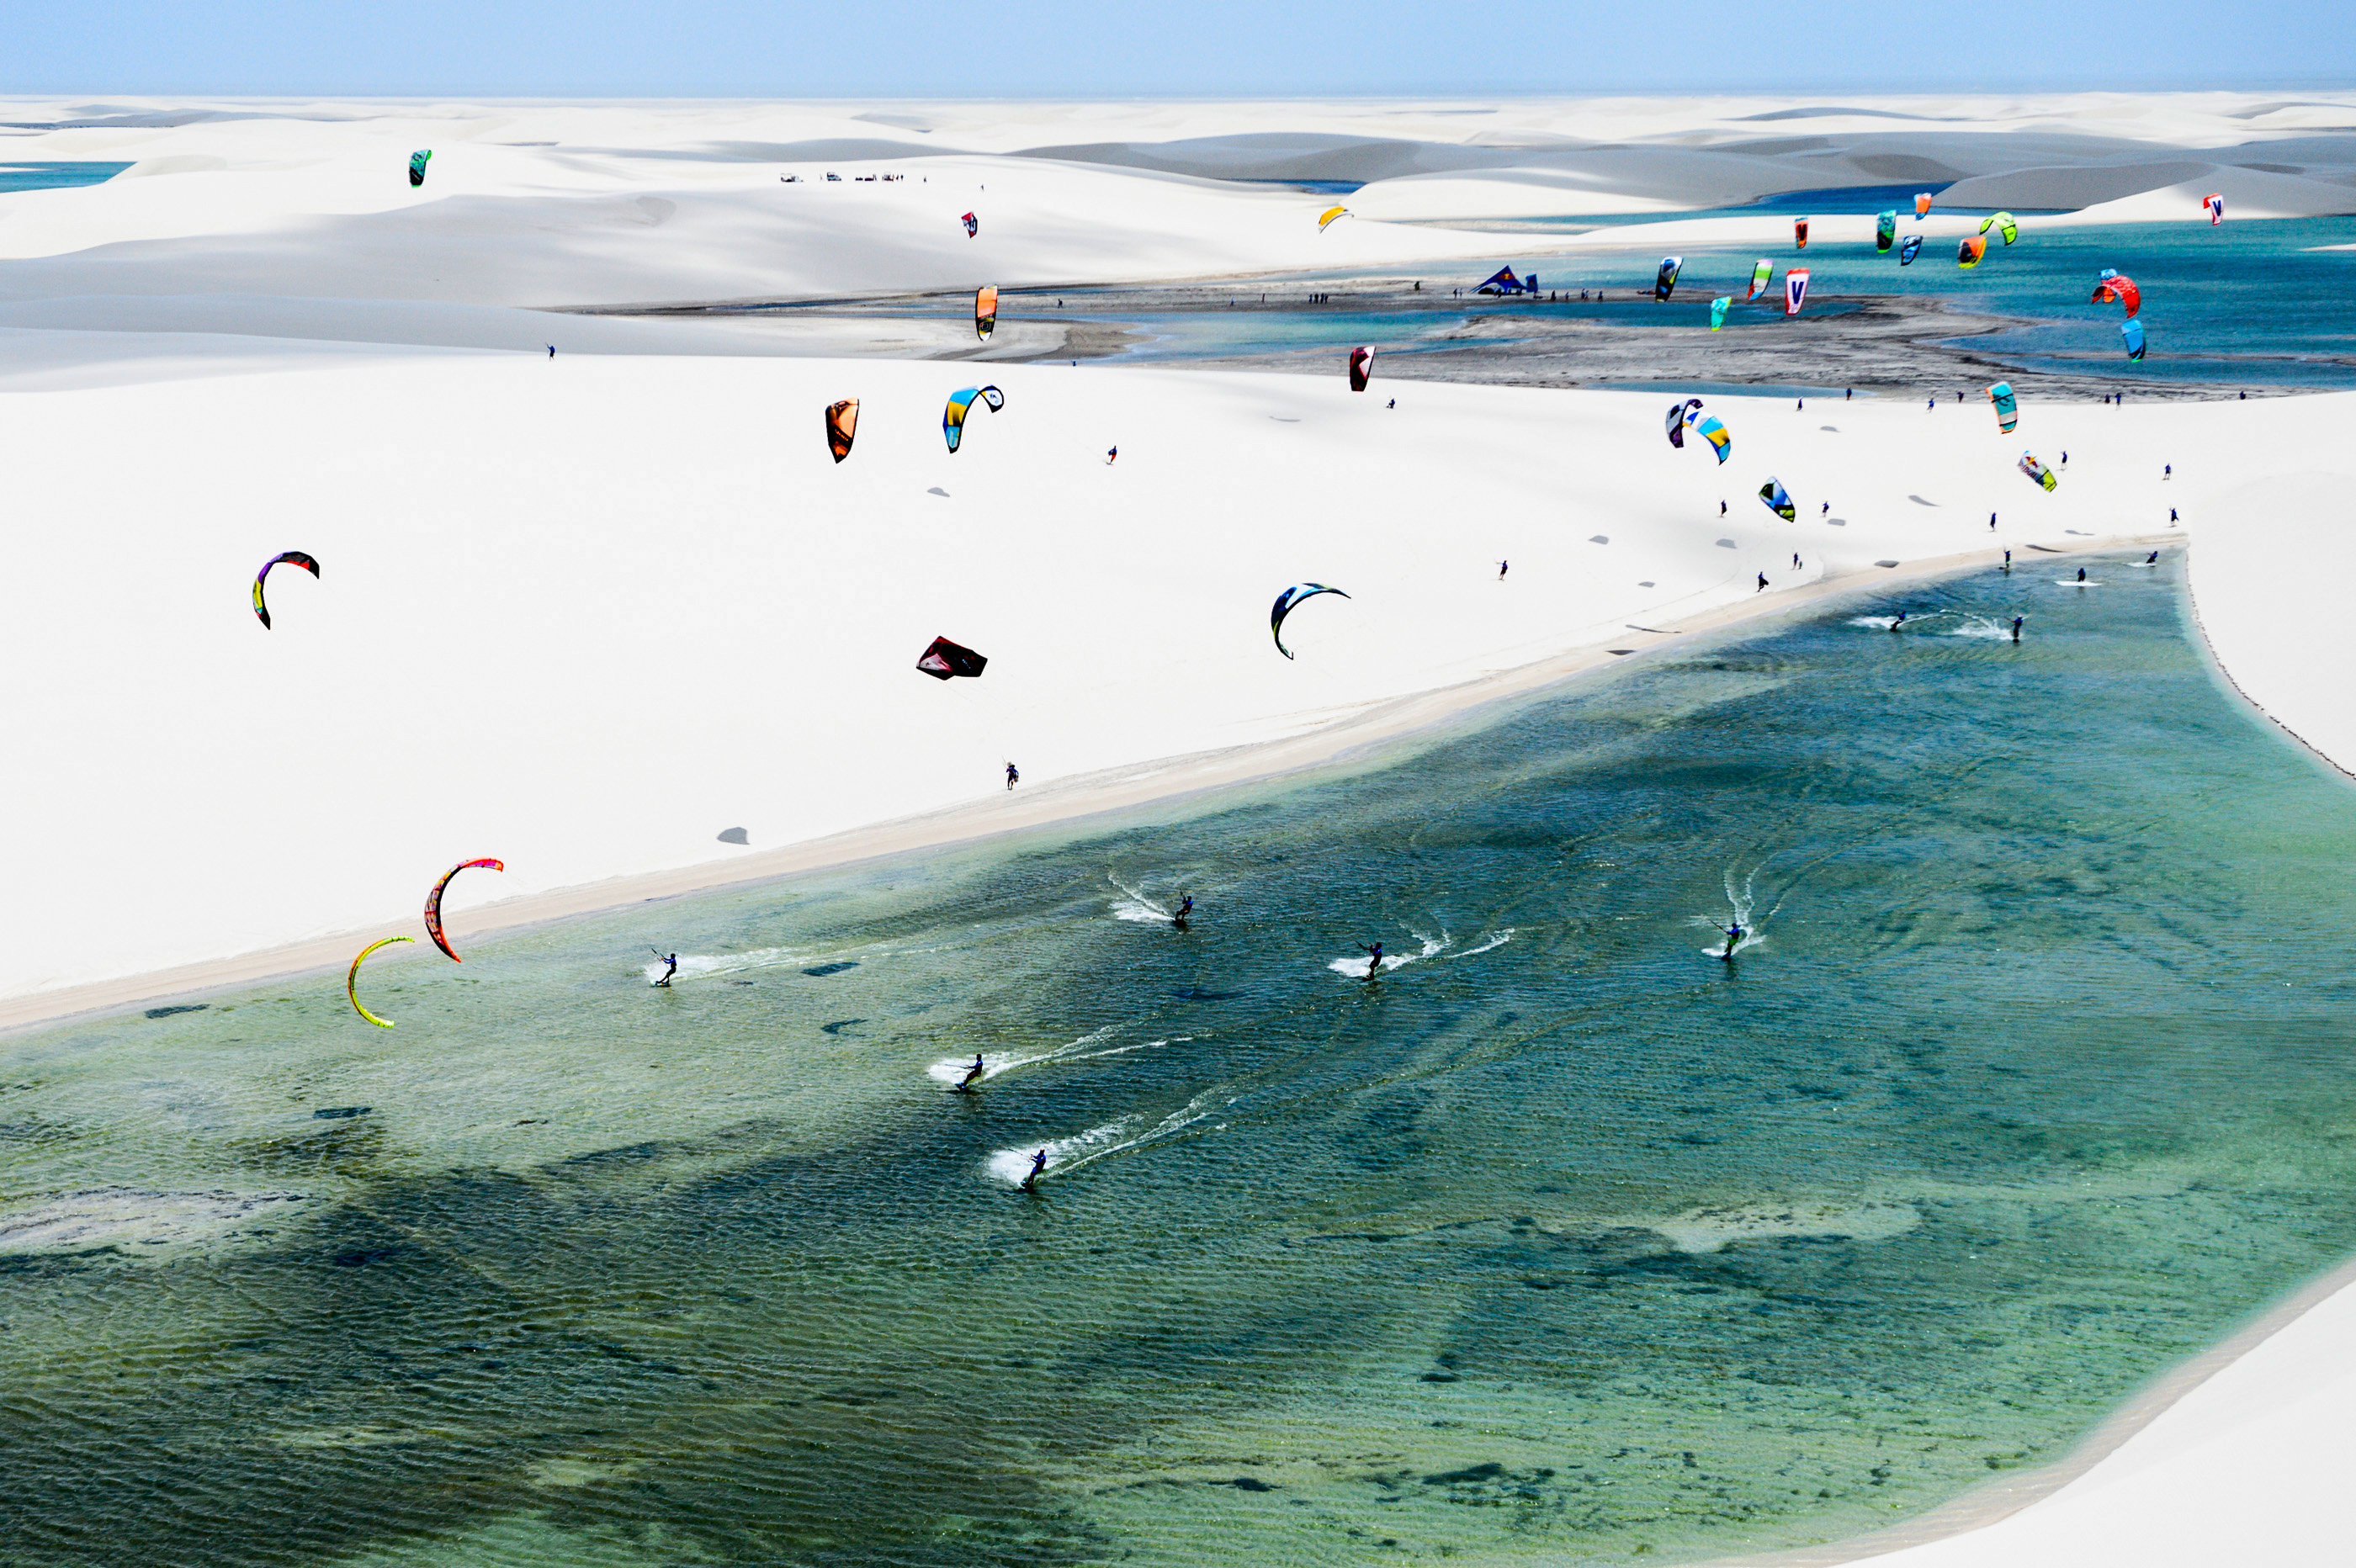 kitesurf wallpaper image - An arial shot of the Red Bull Rally dos Ventos kitesurfing event in Brazil. - in resolution: Original 2800 X 1864